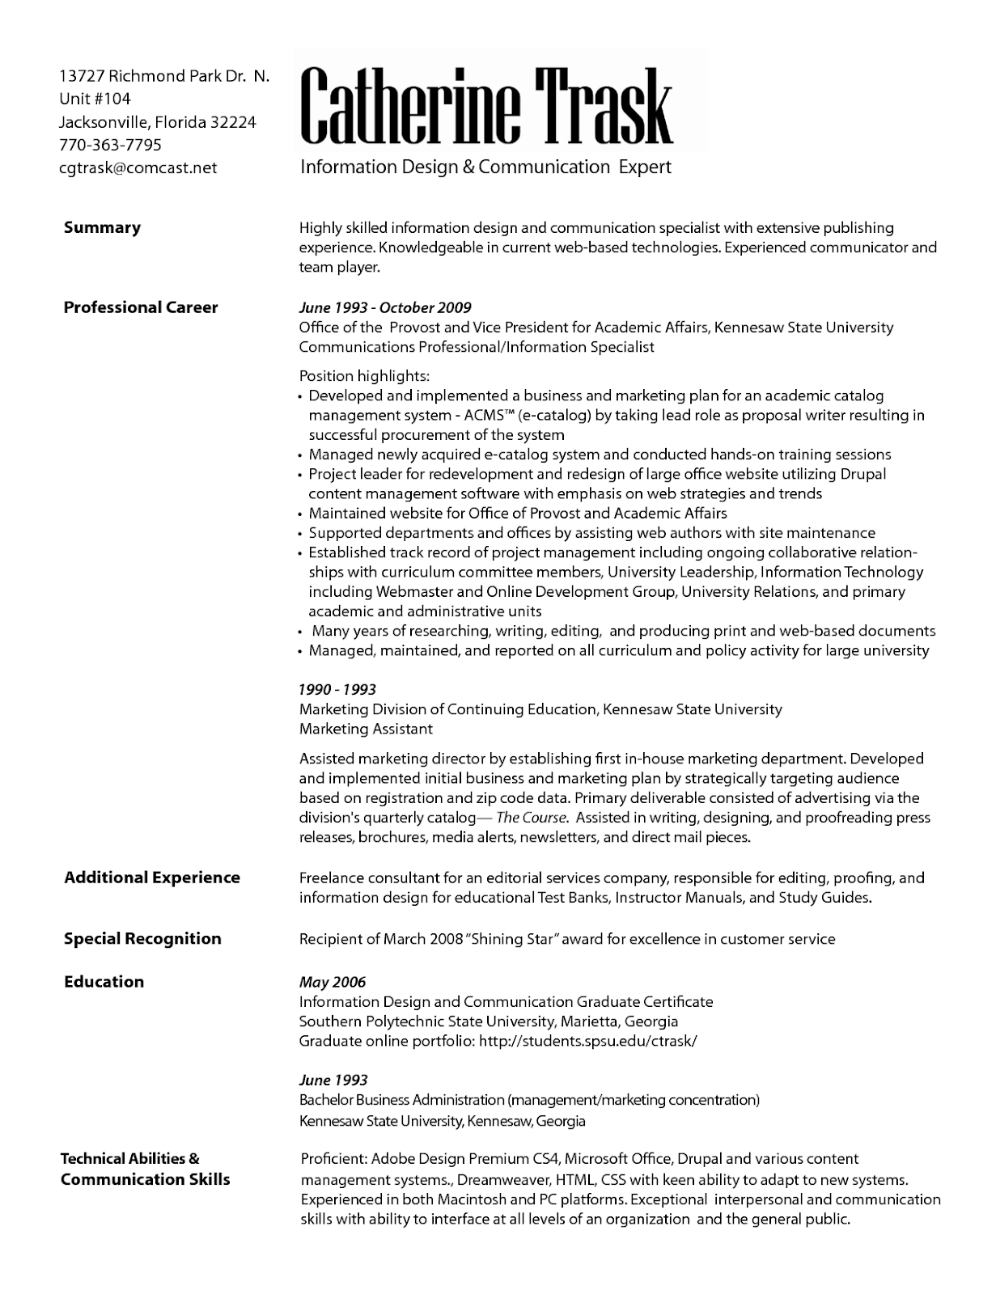 Resume Examples by Industry and Job Title Marketing